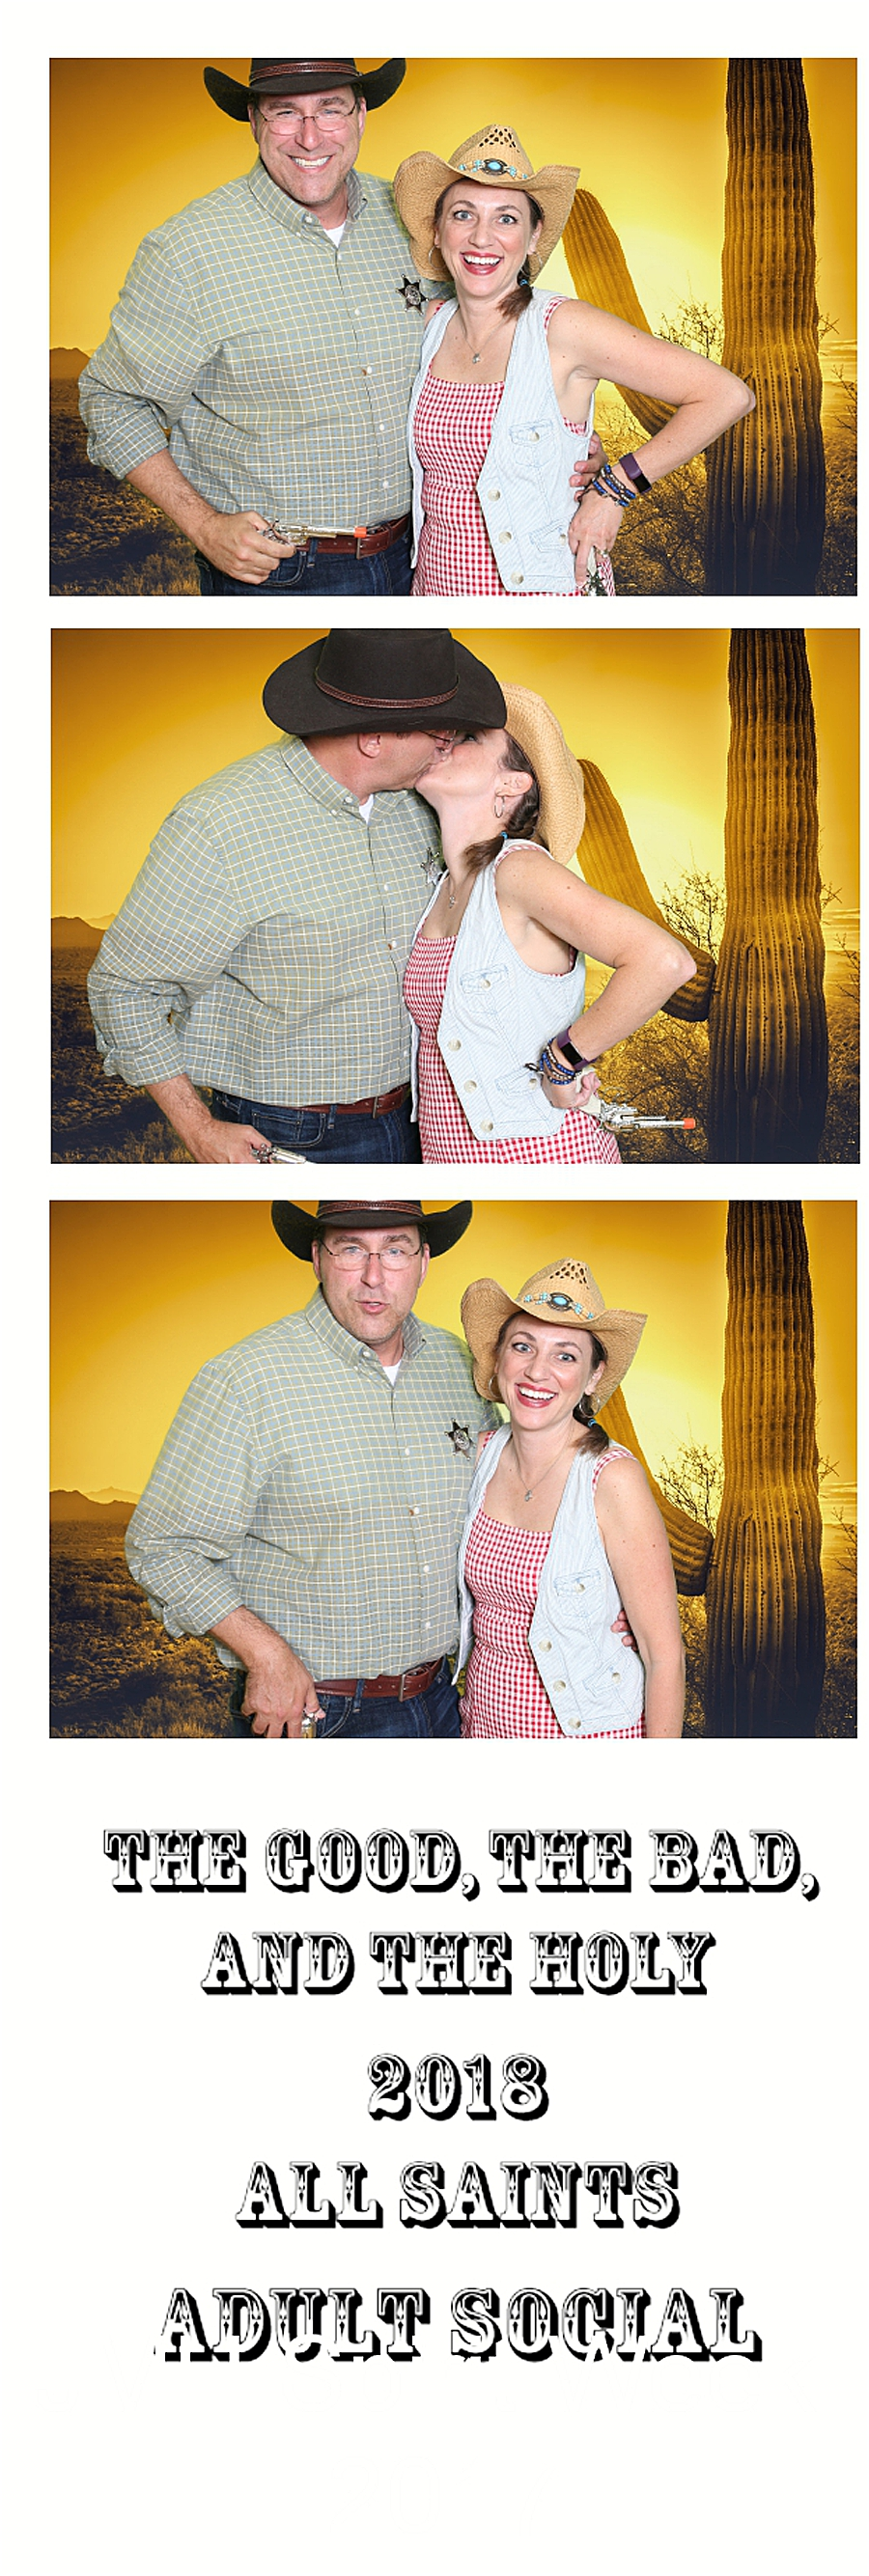 Knoxville Photo Booth_1348.jpg